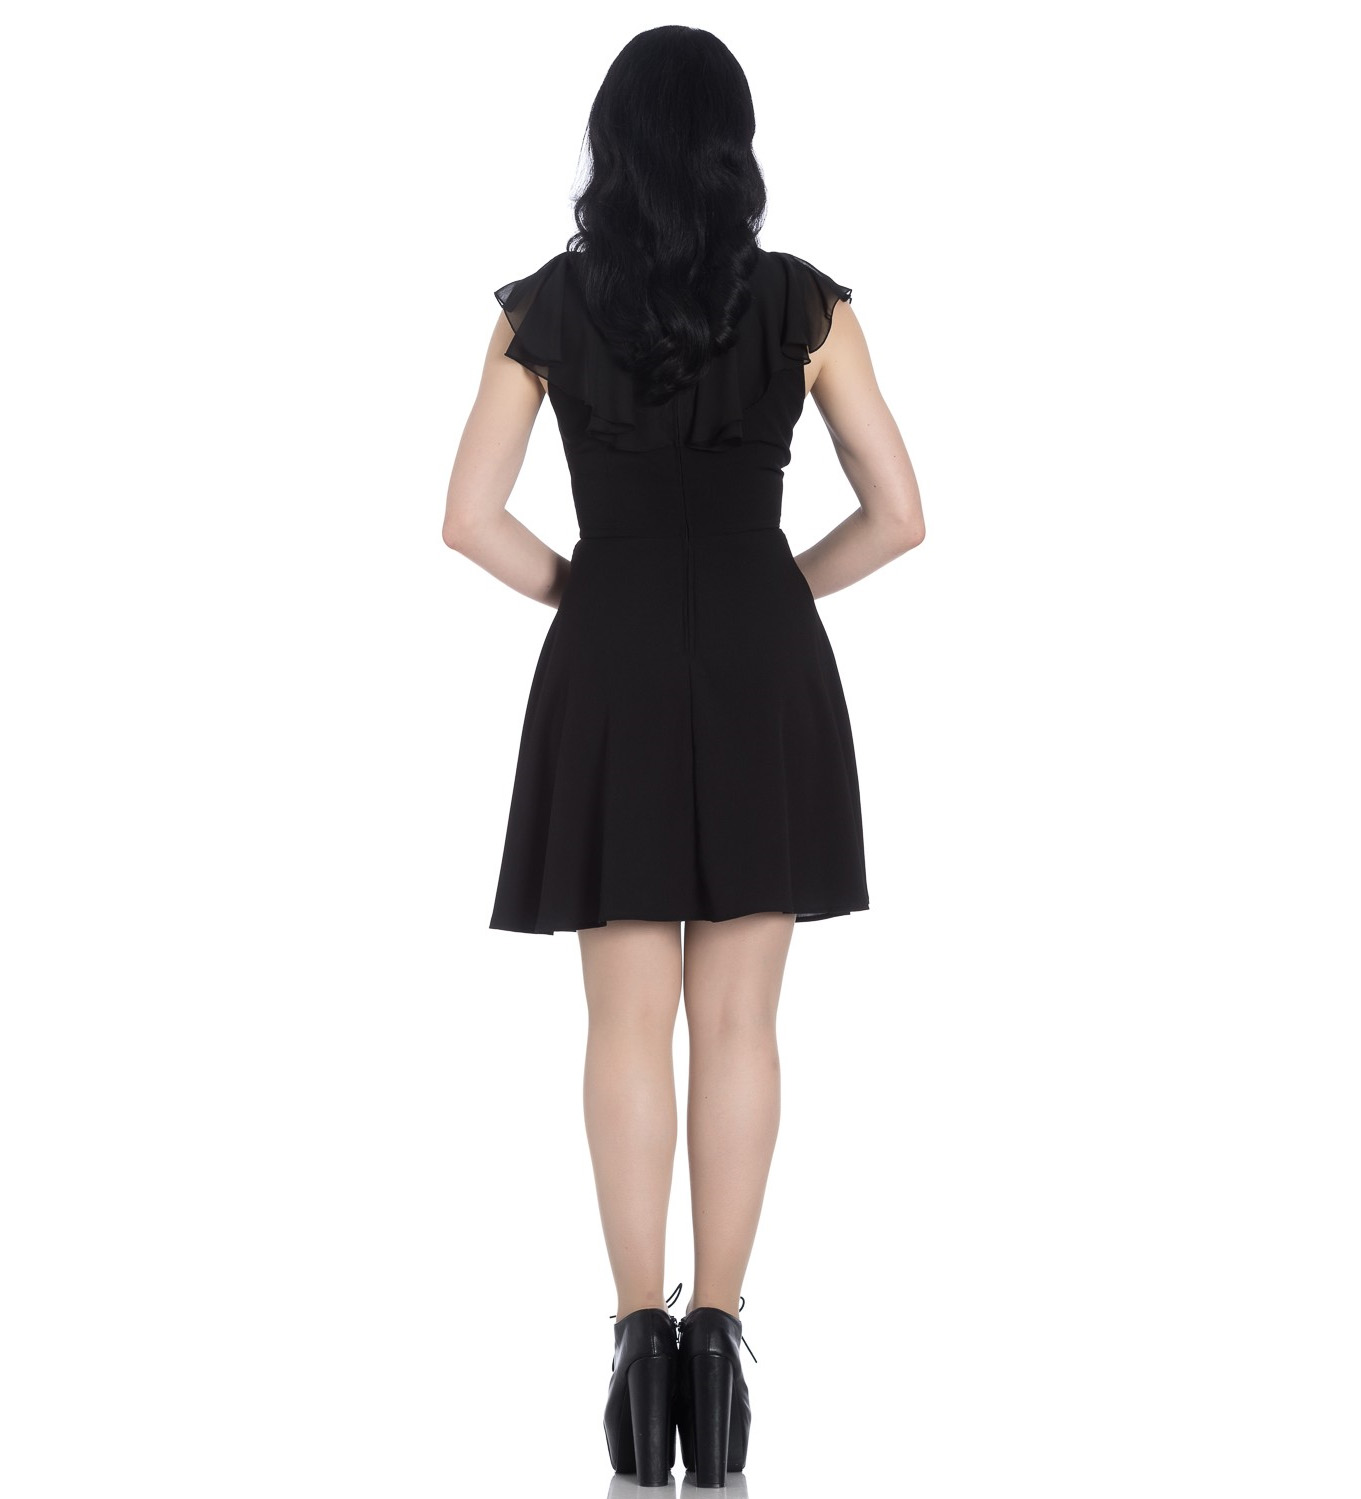 Hell-Bunny-Floaty-Lace-Up-Goth-Witch-Punk-Mini-Dress-ONYX-Black-All-Sizes thumbnail 31